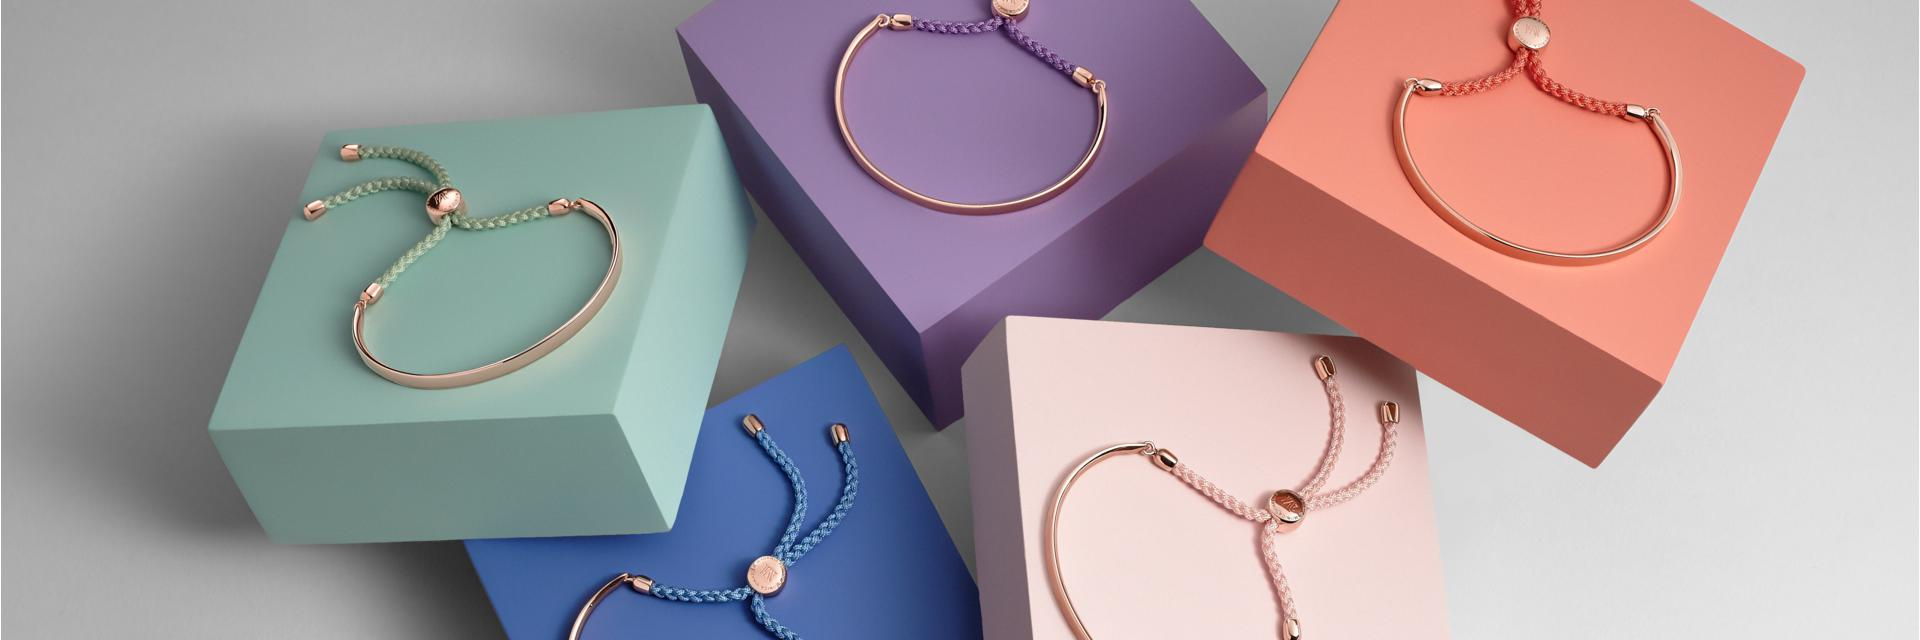 2b0d1f99eb3937 Our iconic friendship bracelet has been refreshed with vibrant sorbet  colour cords, each with its own meaning. The best-selling collection  introduces Ballet ...